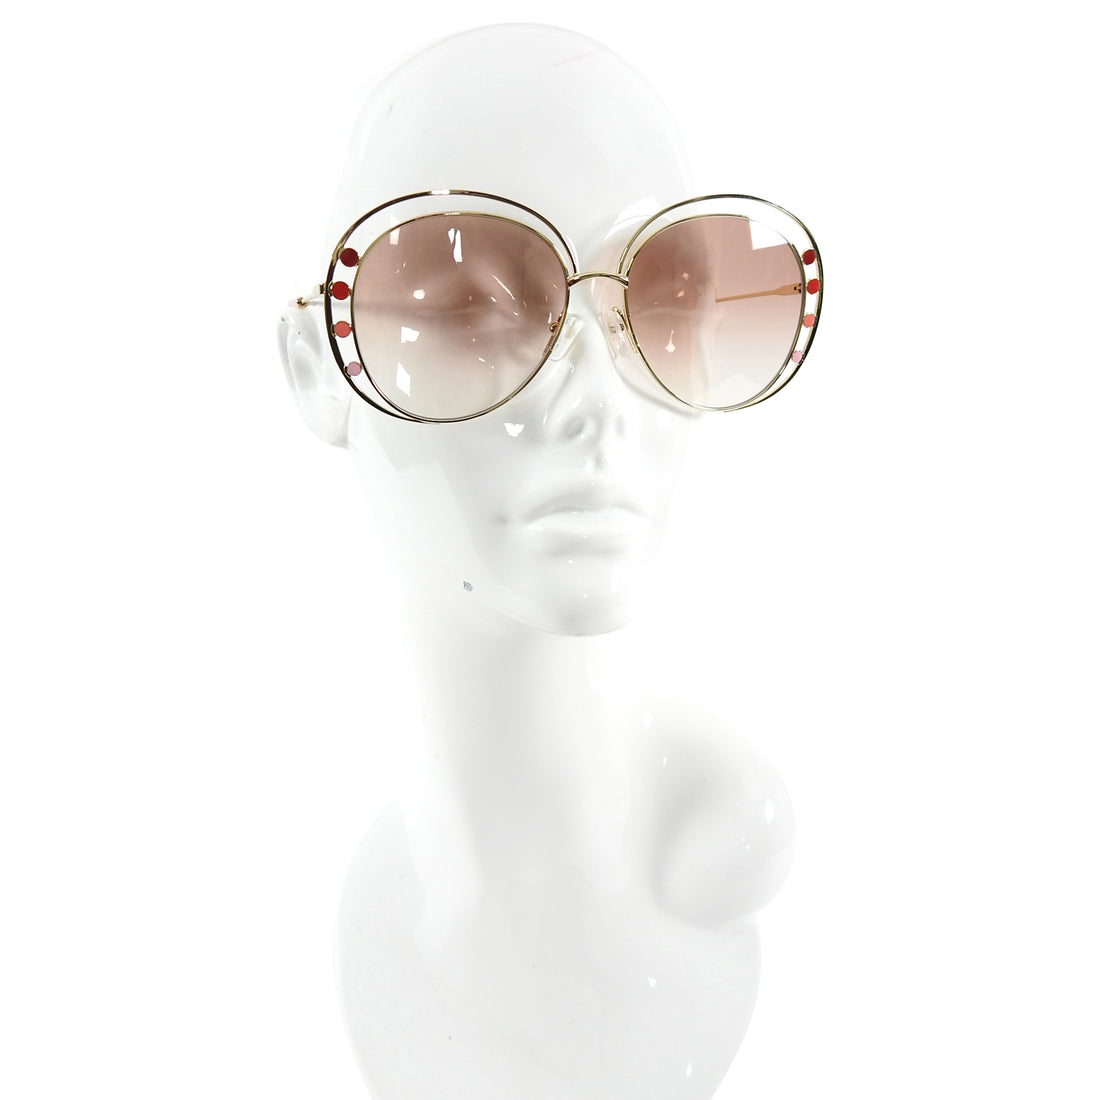 Chloe Large Oversized Round Sunglasses with Enamel Detail CE 169S